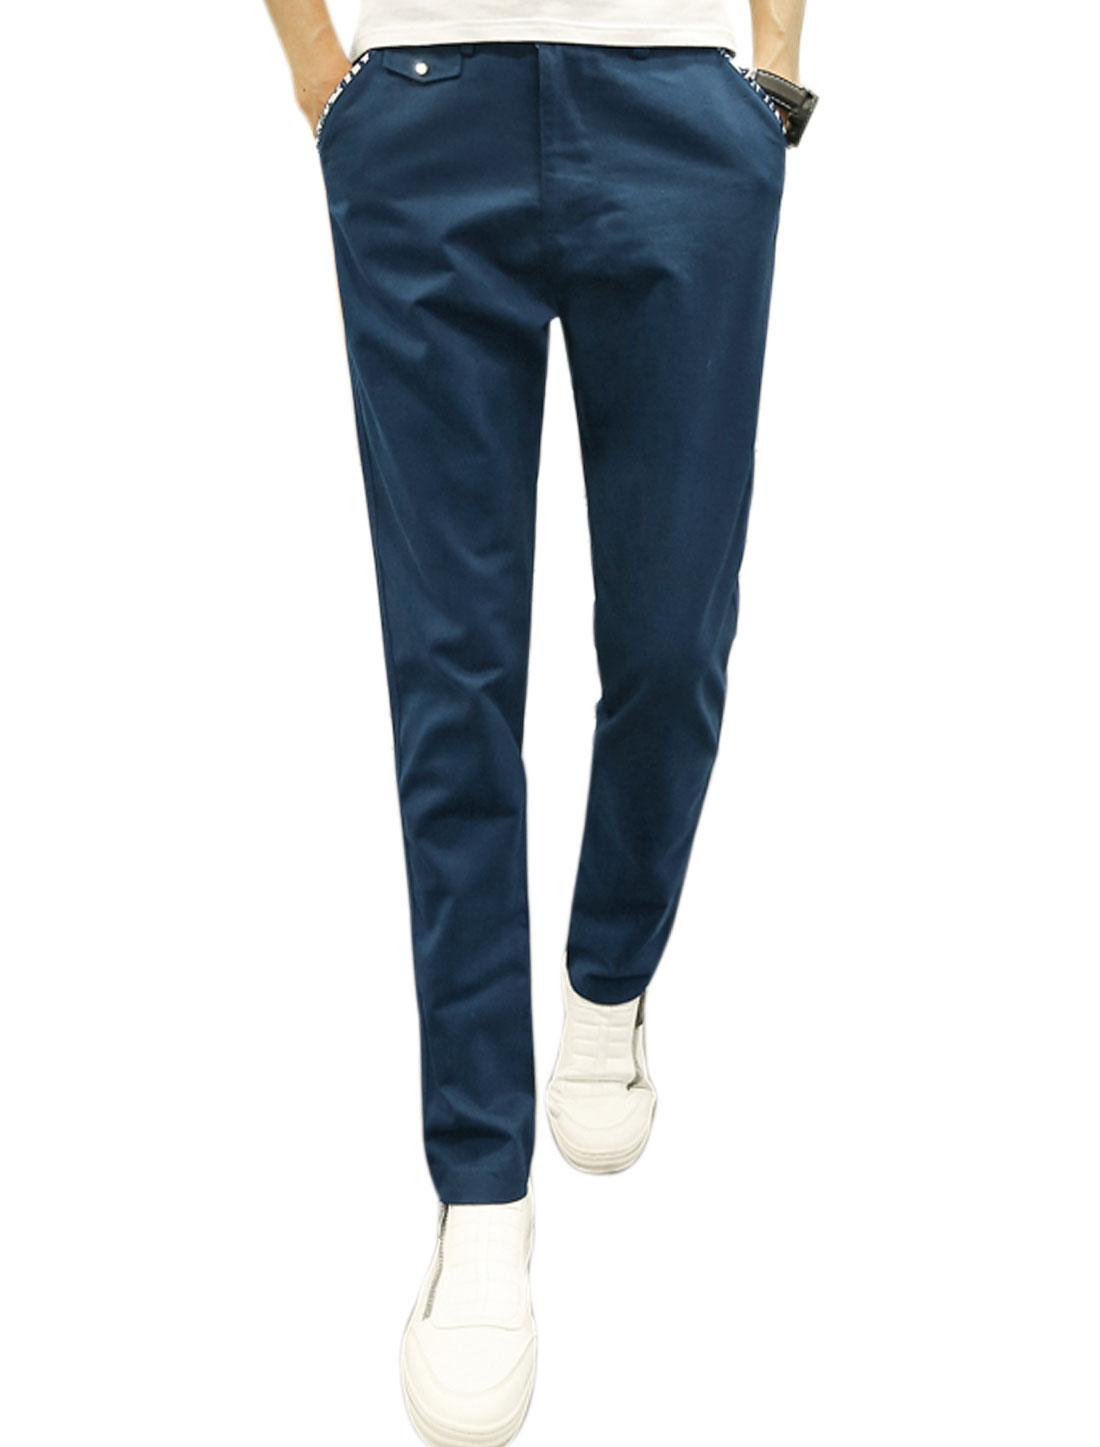 Men Four Pockets Belt Loops Casual Natural Waist Tapered Pants Navy Blue W30